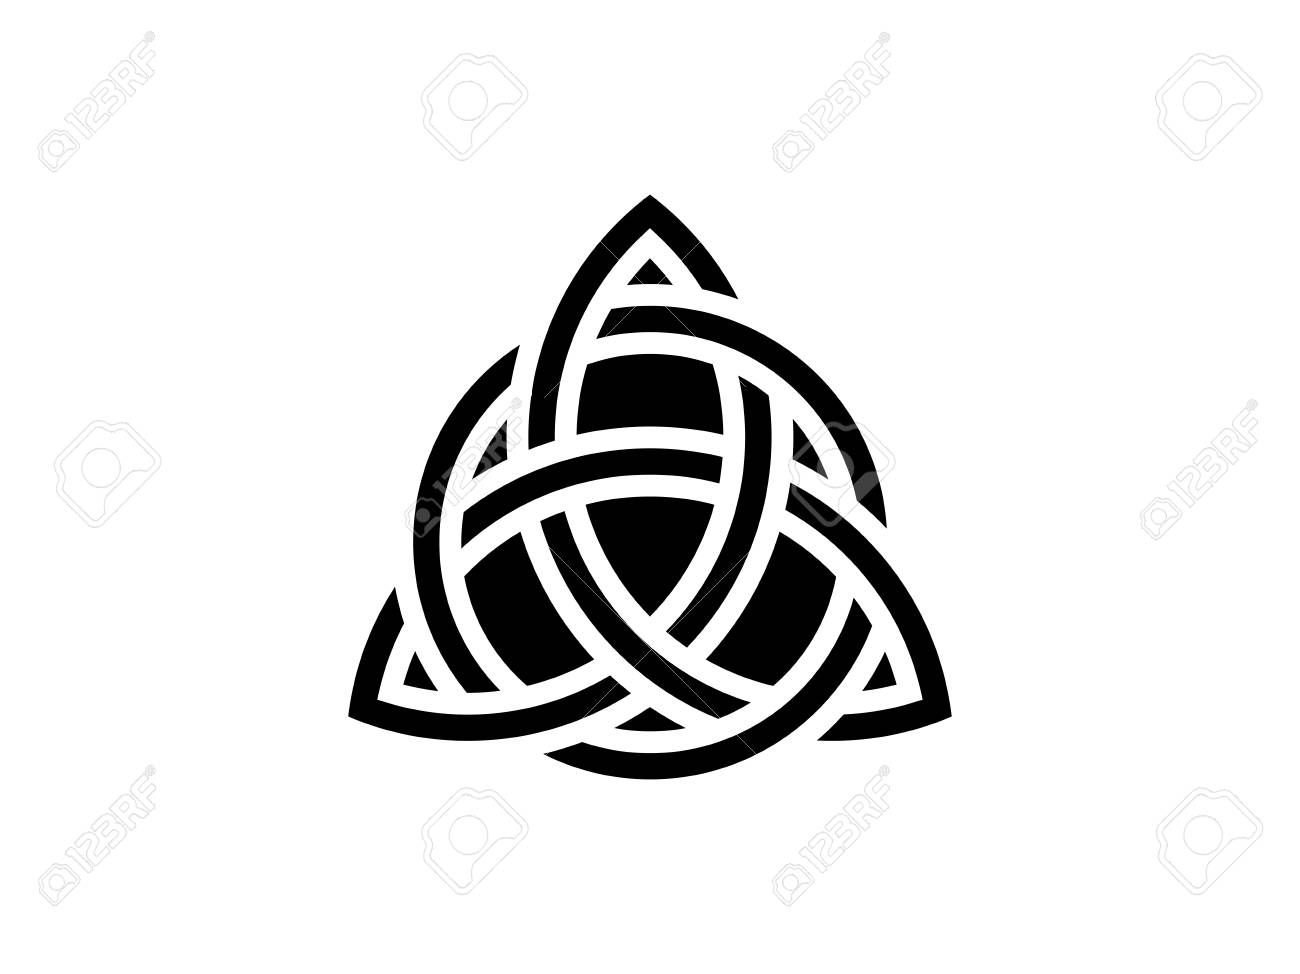 Triquetra. Trinity knot. Celtic symbol of eternity. Vector illus